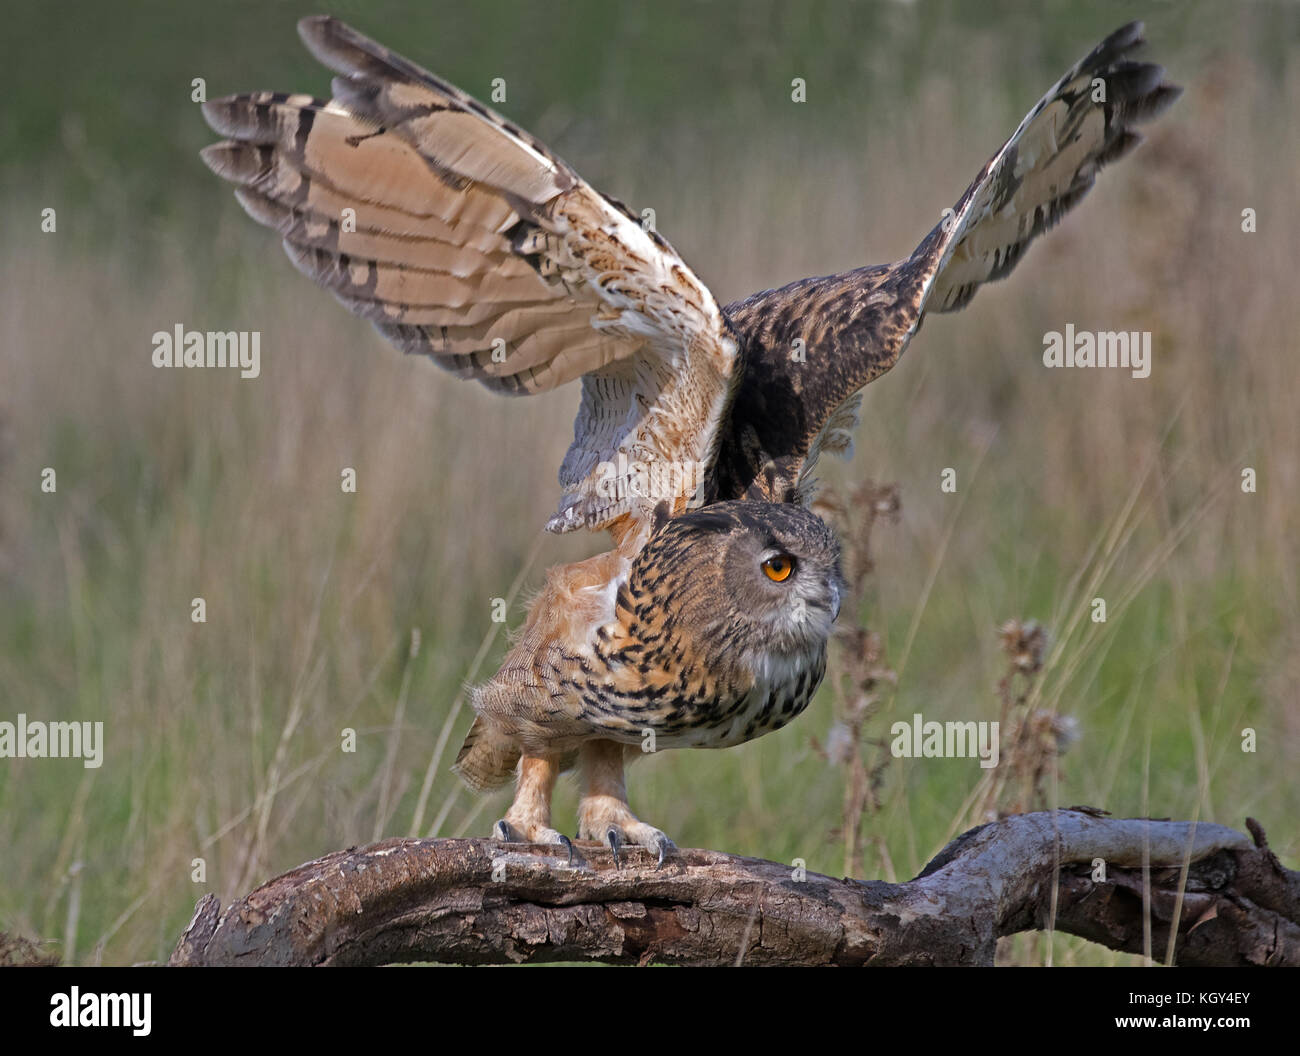 Eurasian eagle-owl (Bubo bubo) On Takeoff - Stock Image